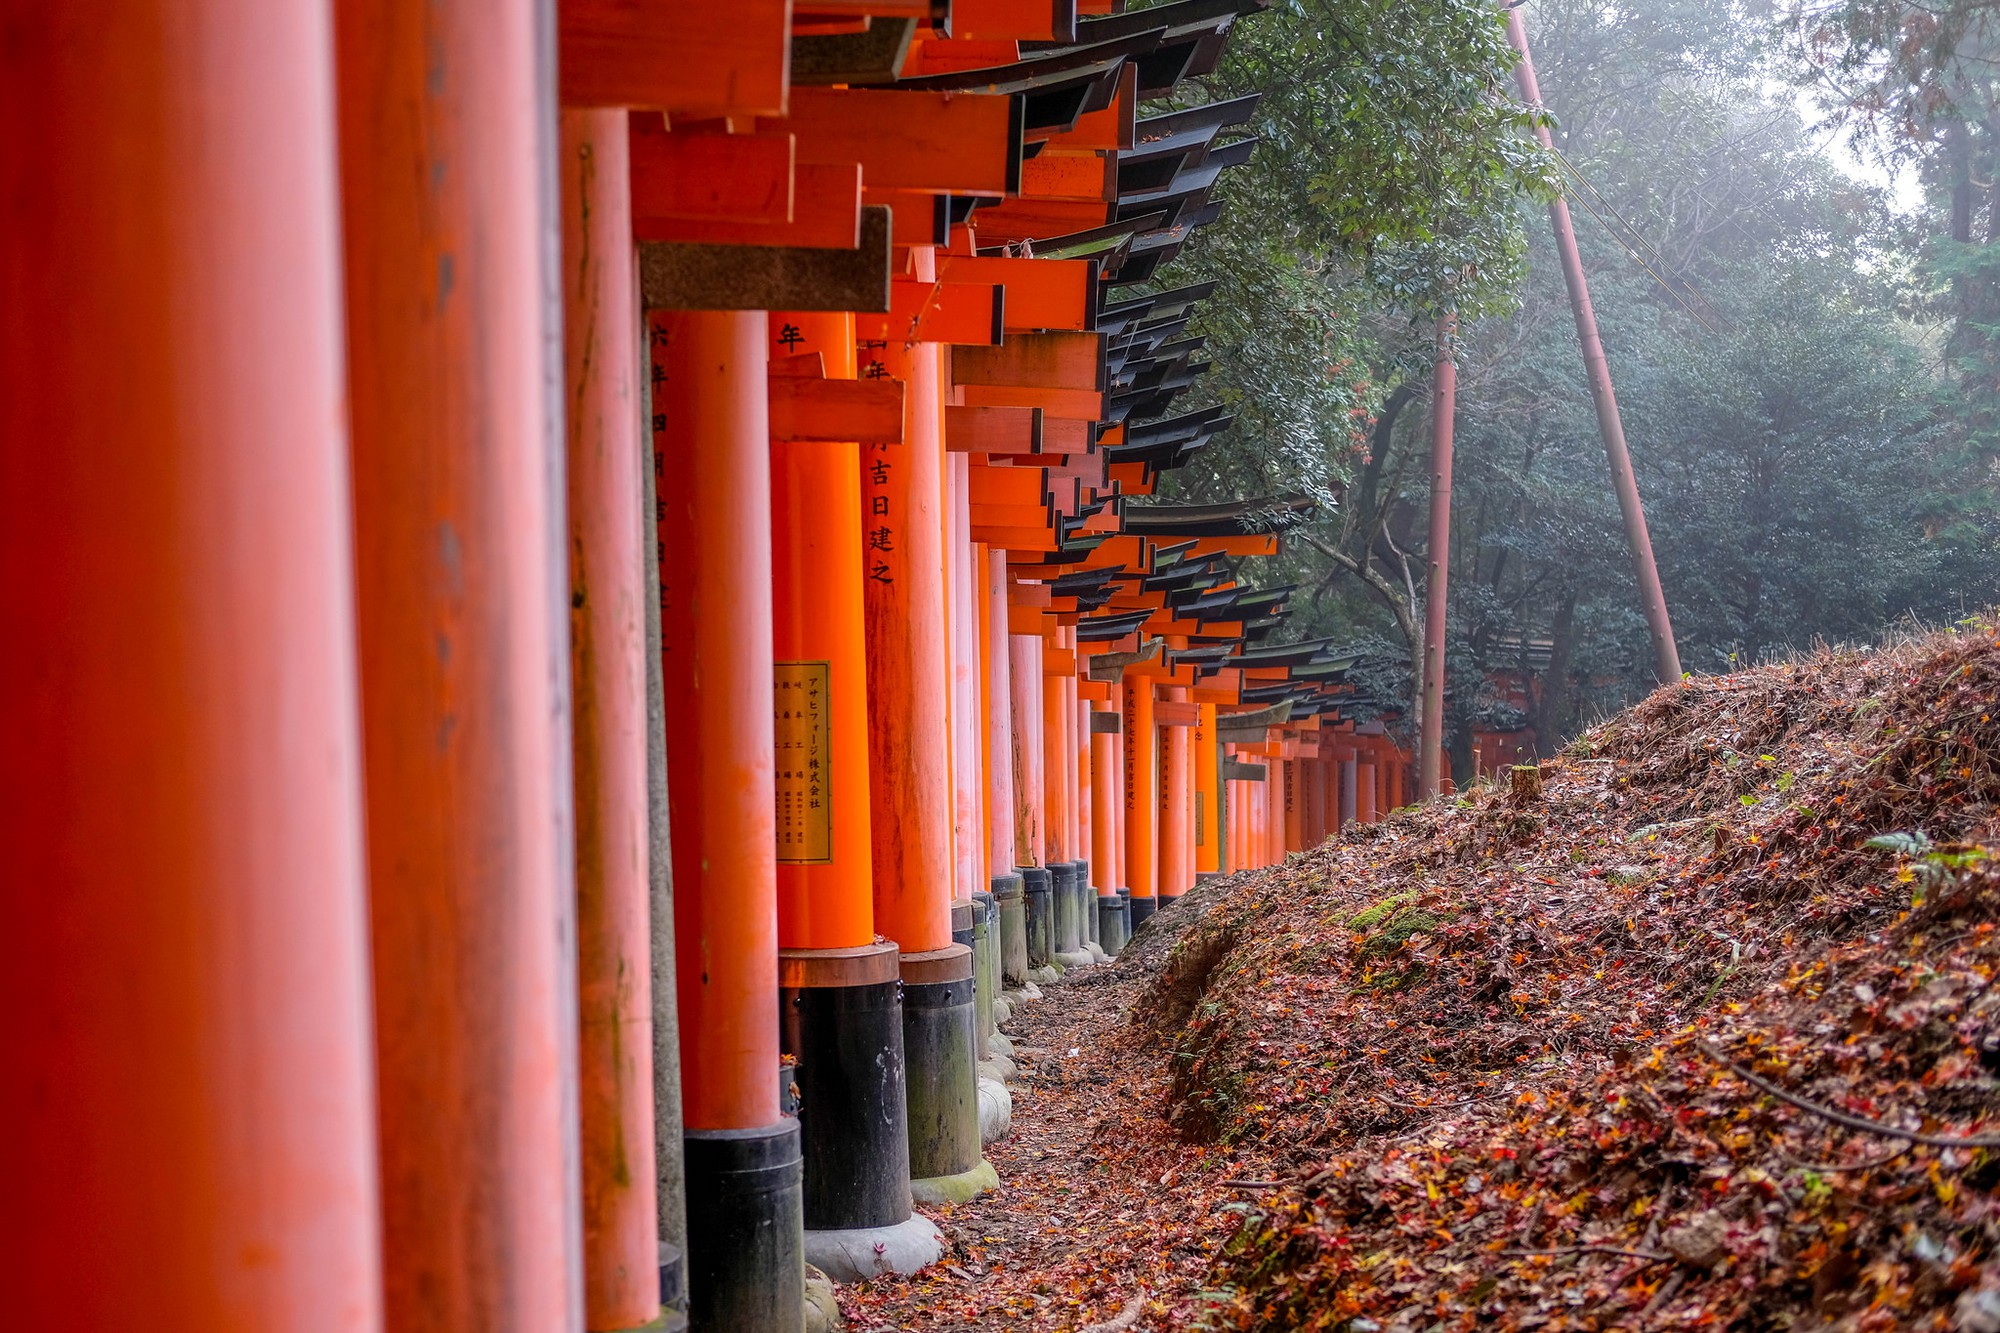 Torii Gates at Fushimi Inari Shrine. Credit: sergejf. Licensed under CC 2.0.